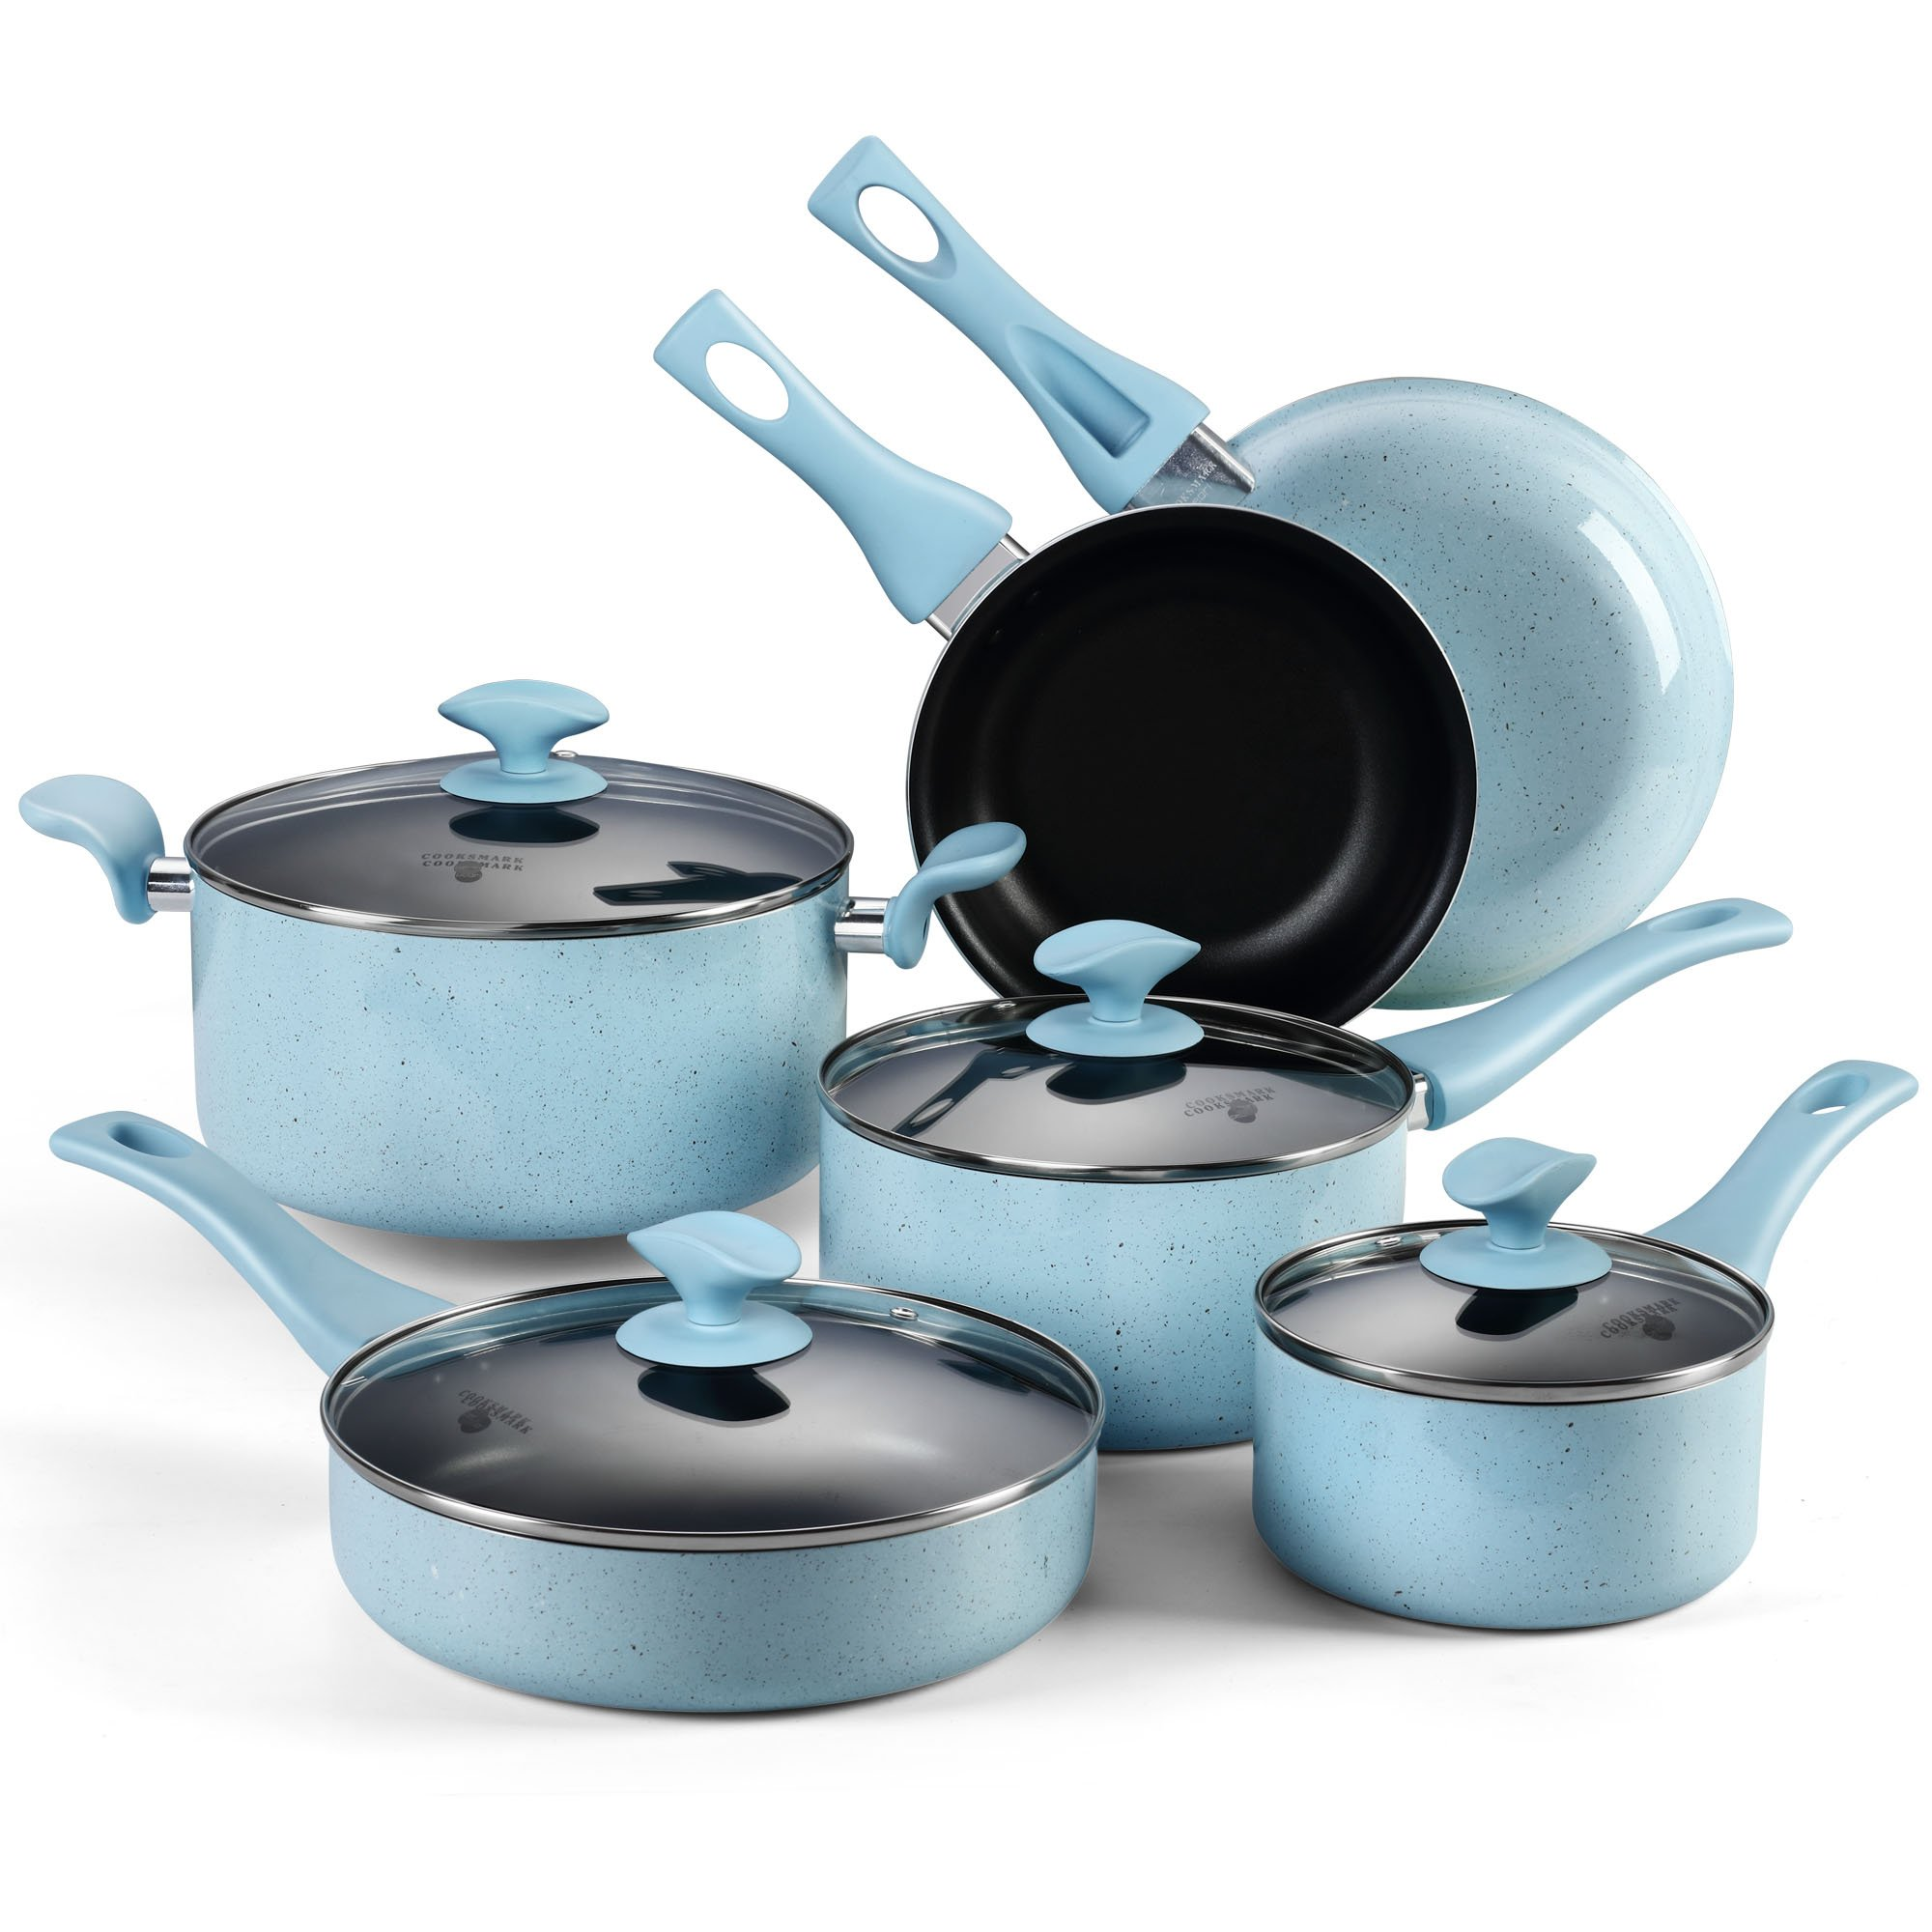 Pots and Pans Set, COOKSMARK Pearl Hard Porcelain Enamel Nonstick Cookware Set, 10-Piece, Dishwasher Safe, Blue Speckle